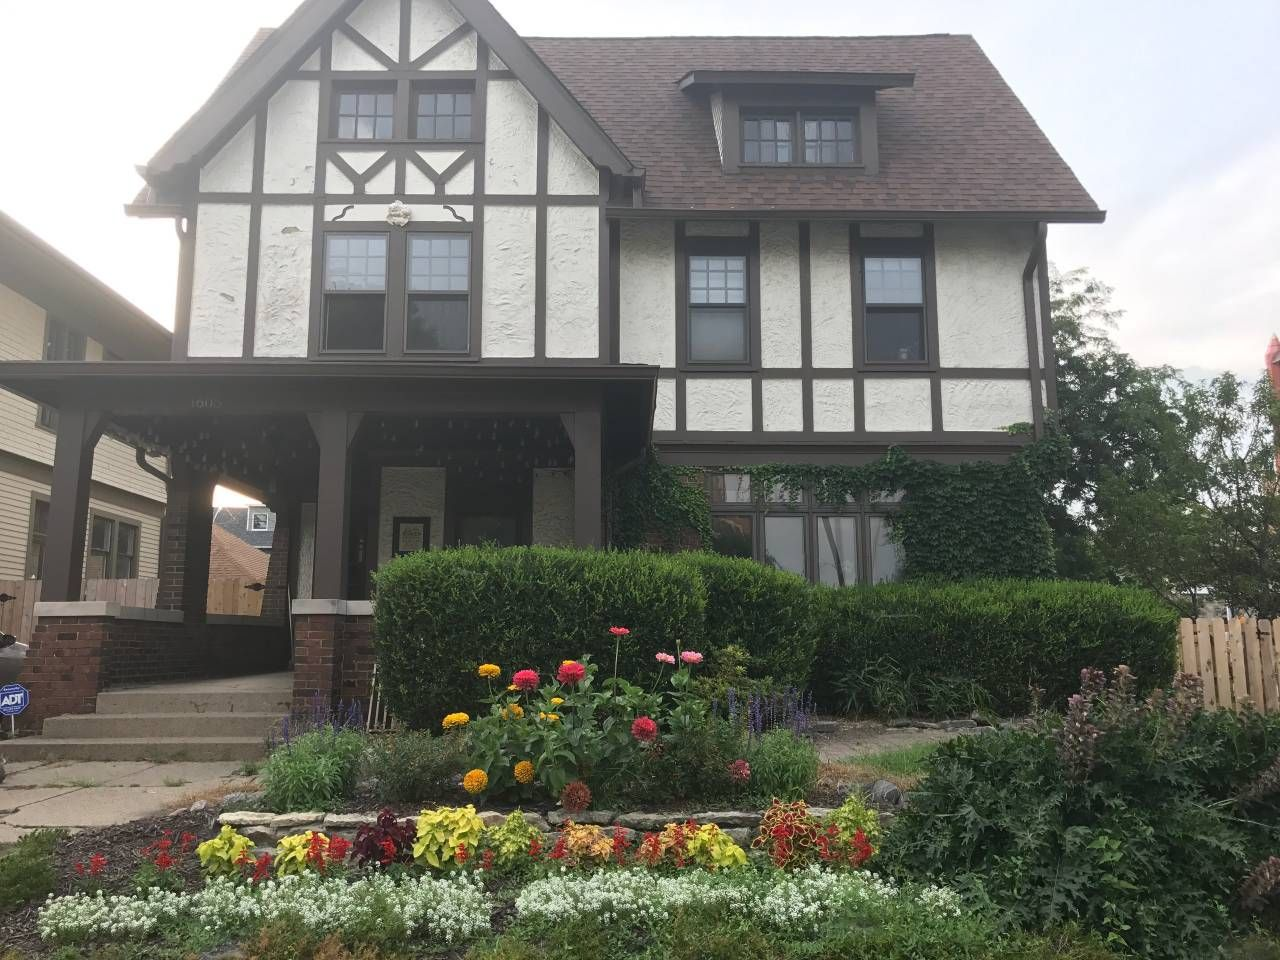 English tudor style historic home houses for rent in